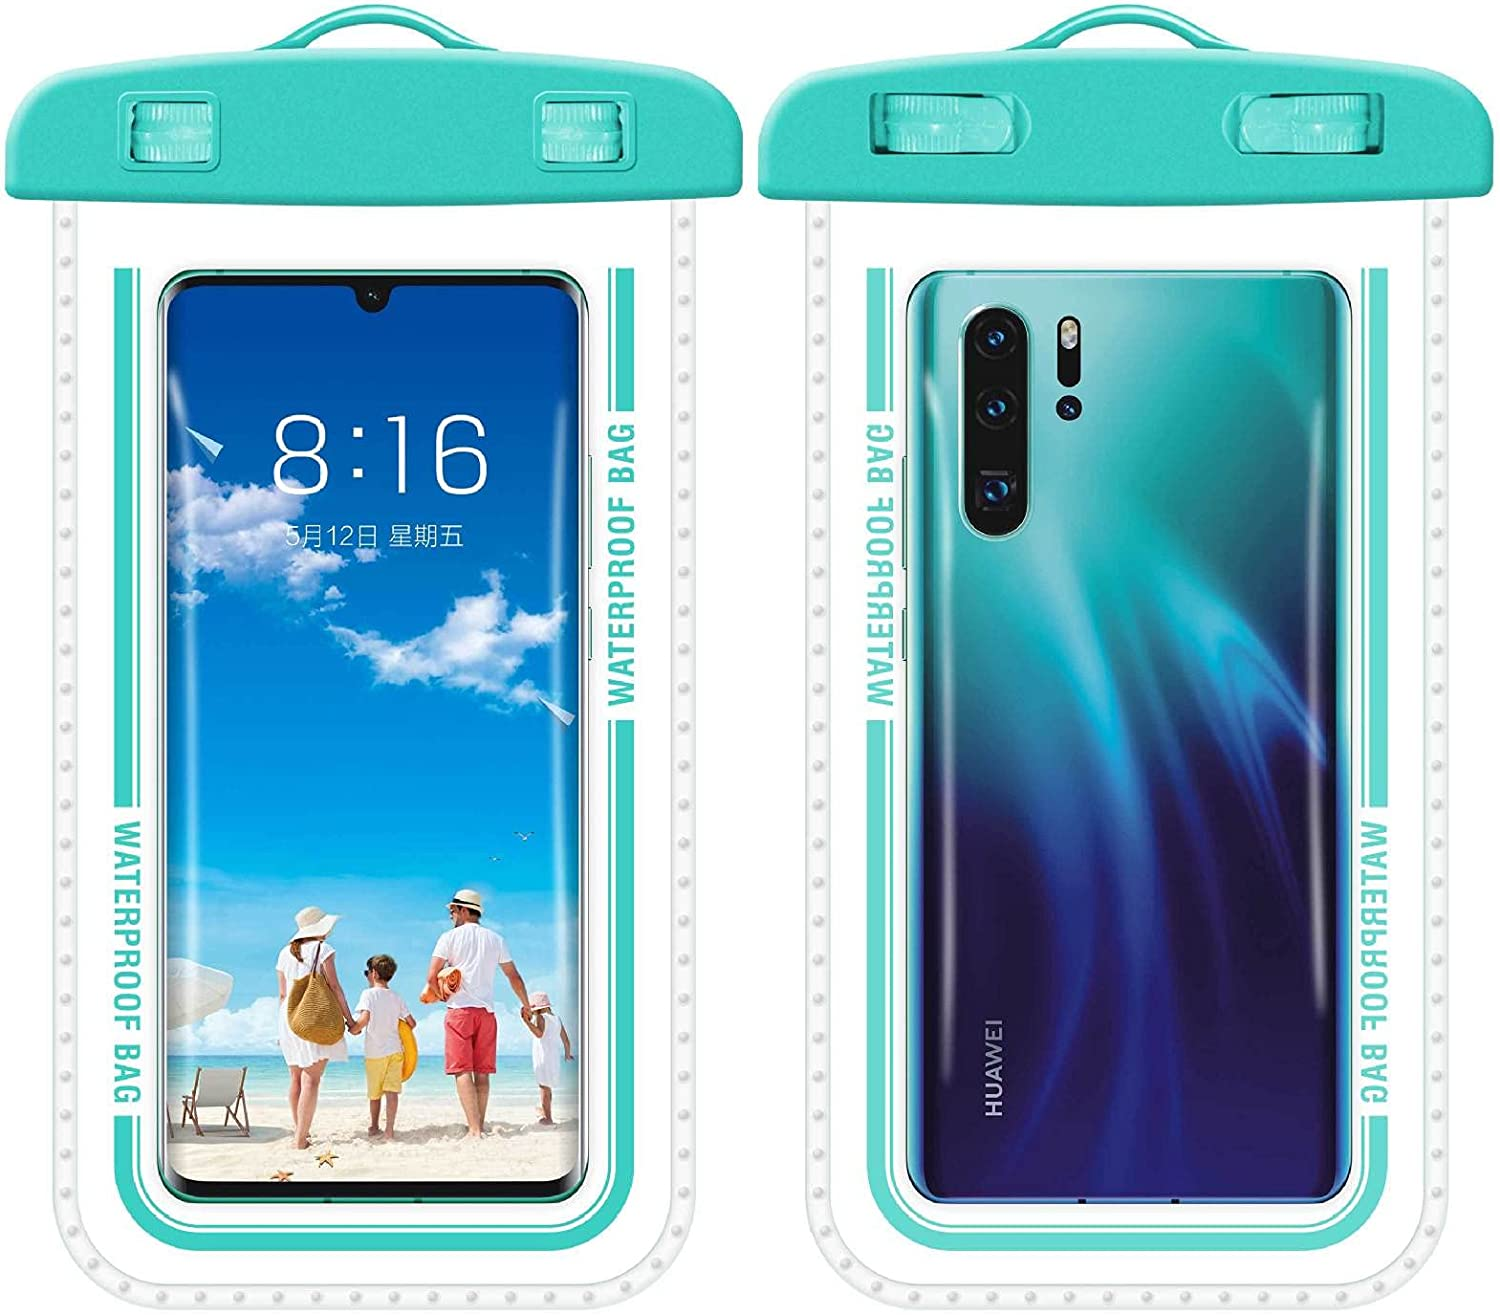 2Pieces Universal Waterproof Phone Pouch Underwater Clear Phone Case Cellphone Dry Bag Pouch with Lanyard Outdoor Beach Swimming Snorkeling for Smartphone up (lake blue)